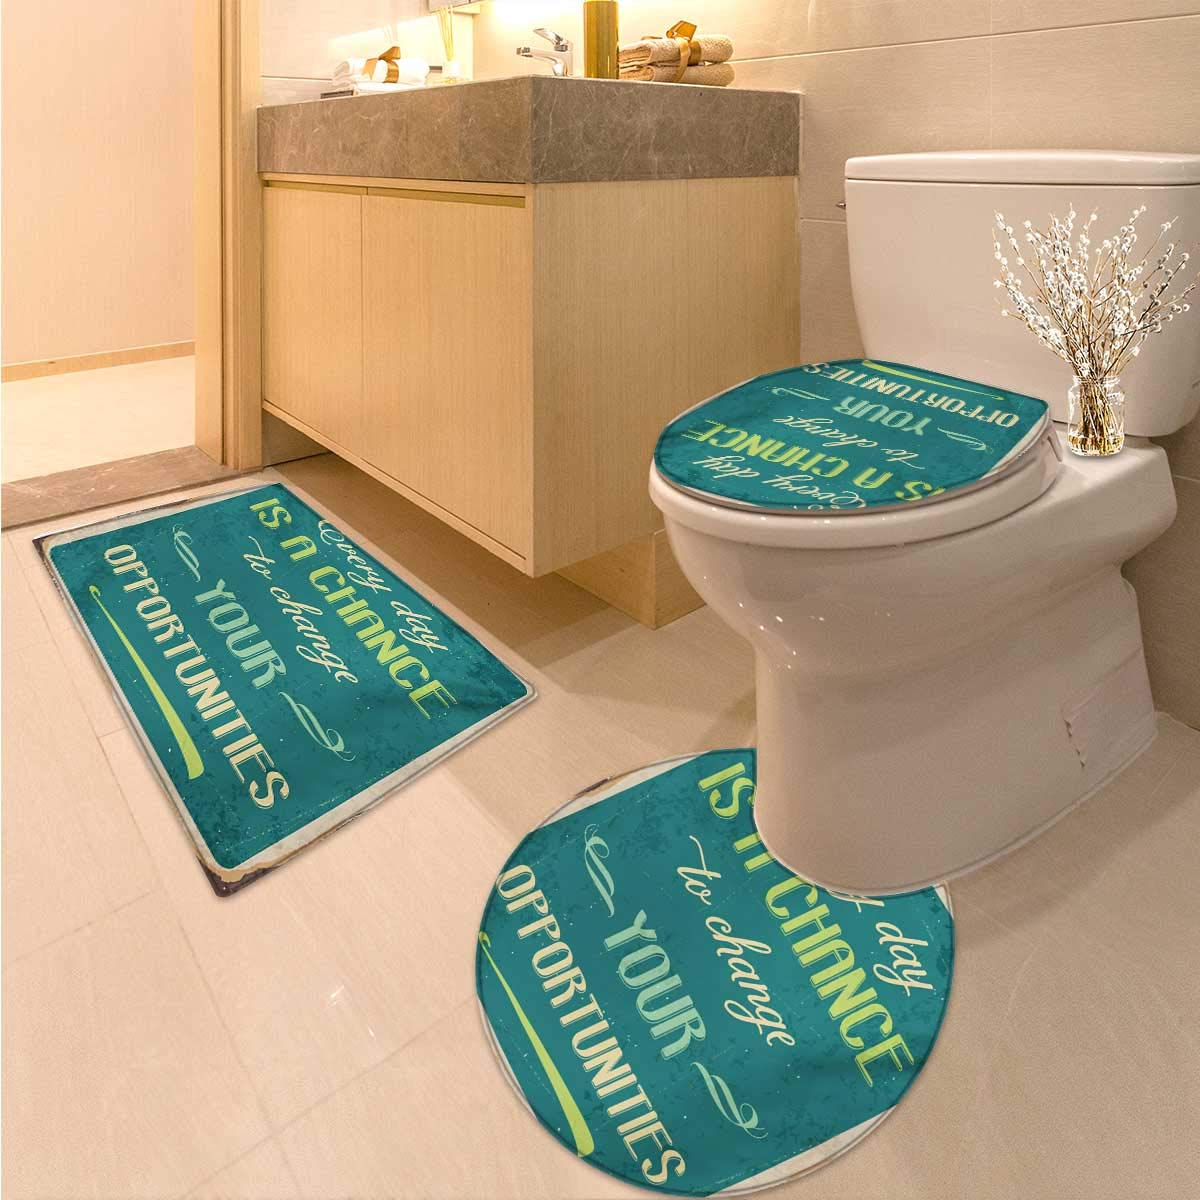 Anhuthree Lifestyle Bath Toilet mat Set Every Day is a Chance to Change Your Opportunities Quote Retro Poster Print 3 Piece Shower Mat Set Jade Green Tan